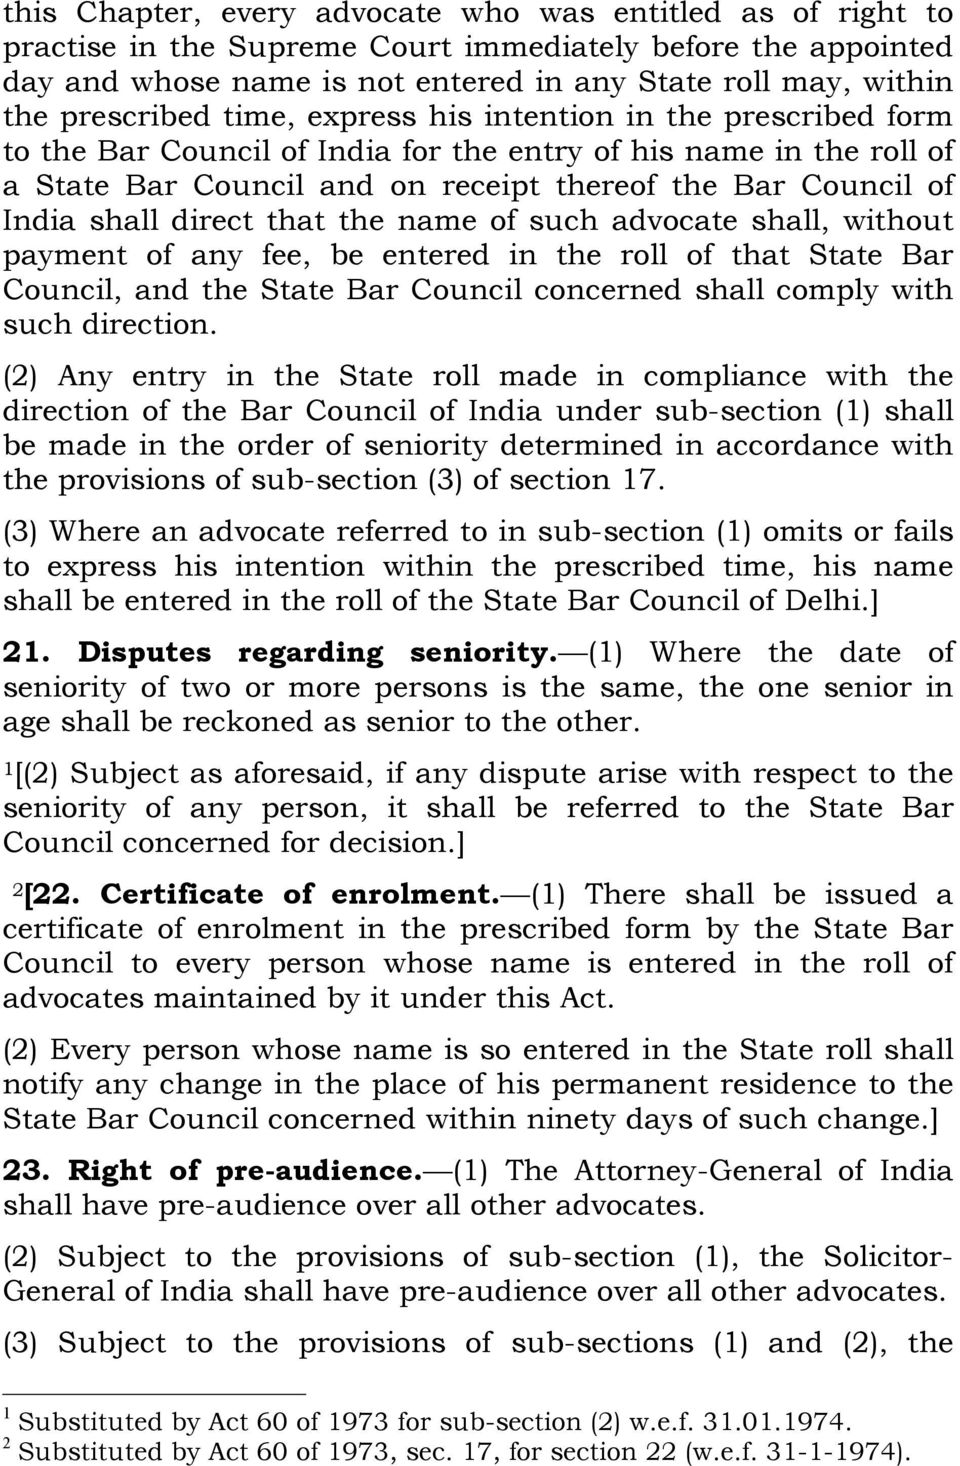 shall direct that the name of such advocate shall, without payment of any fee, be entered in the roll of that State Bar Council, and the State Bar Council concerned shall comply with such direction.